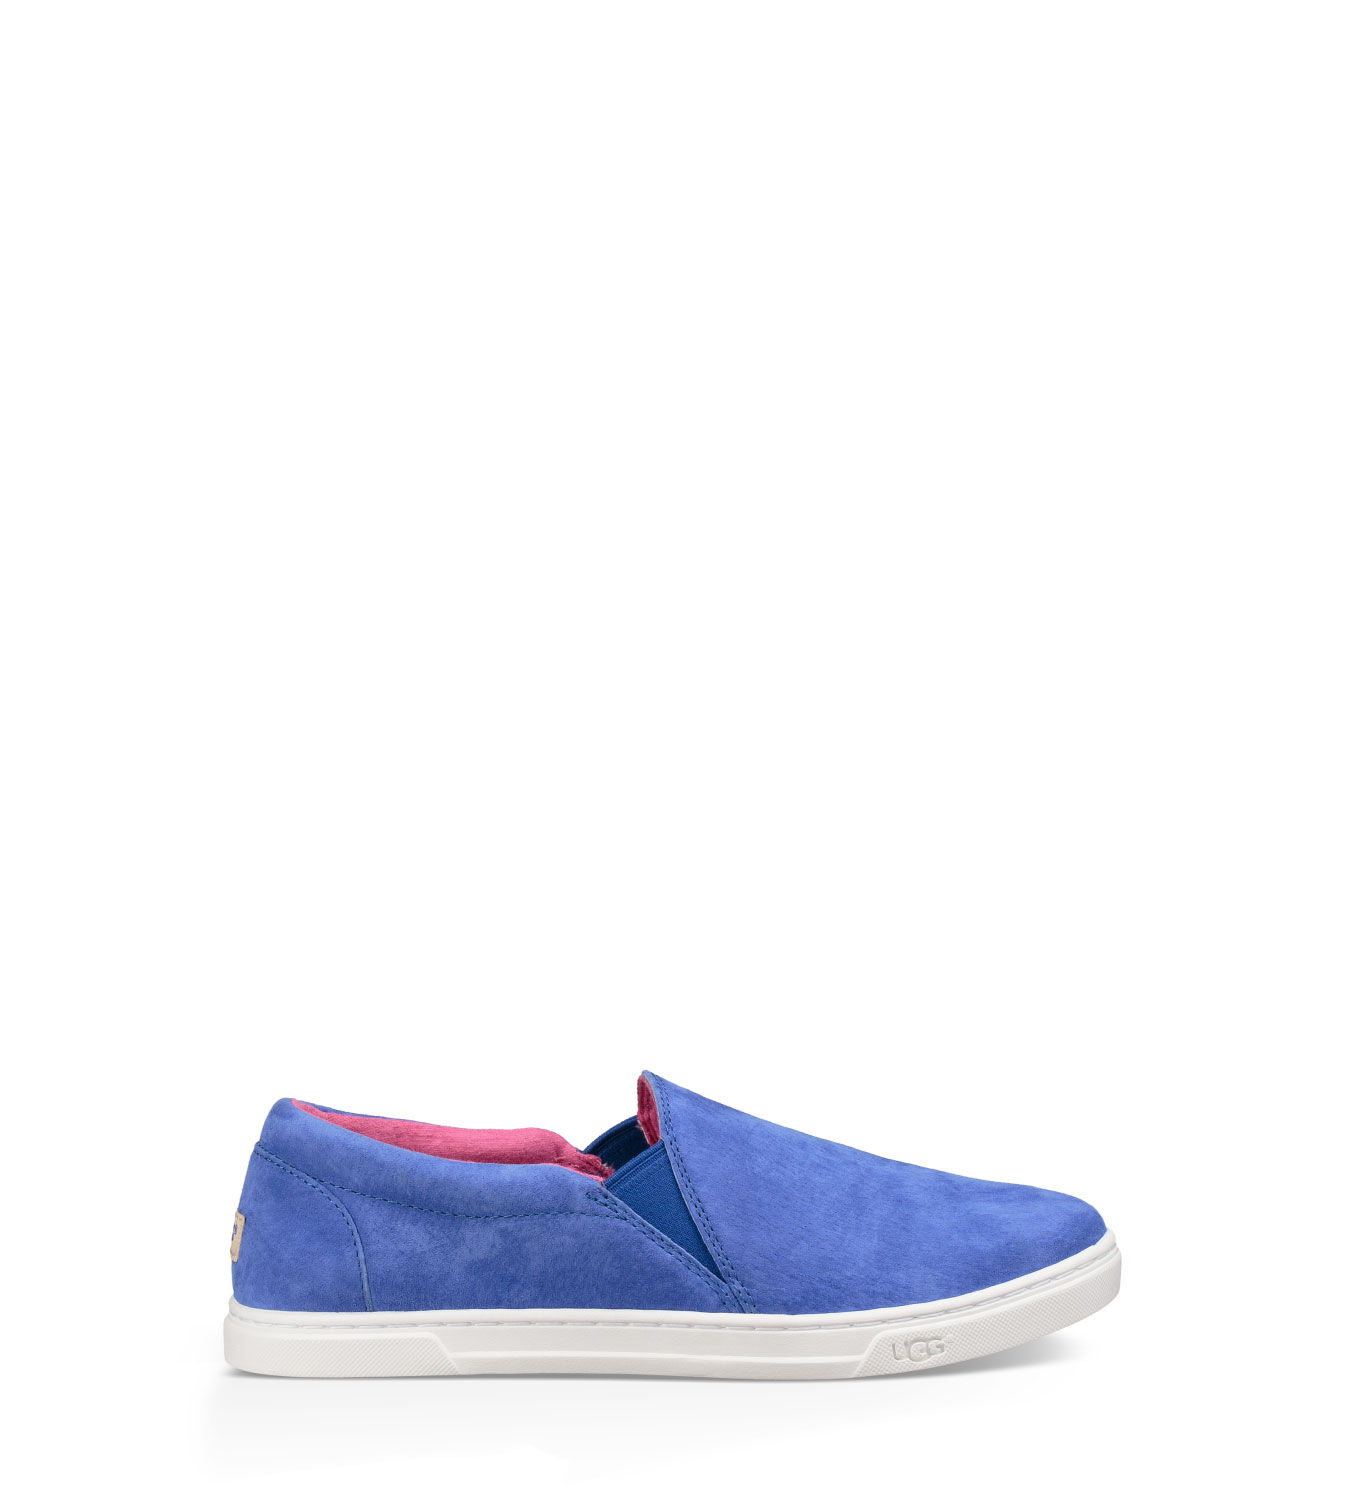 Mens Moccasins Chung -Shi Latest For Sale Outlet Sale Online Online Cheap Price Outlet Store Locations Cheap Websites eKa4r